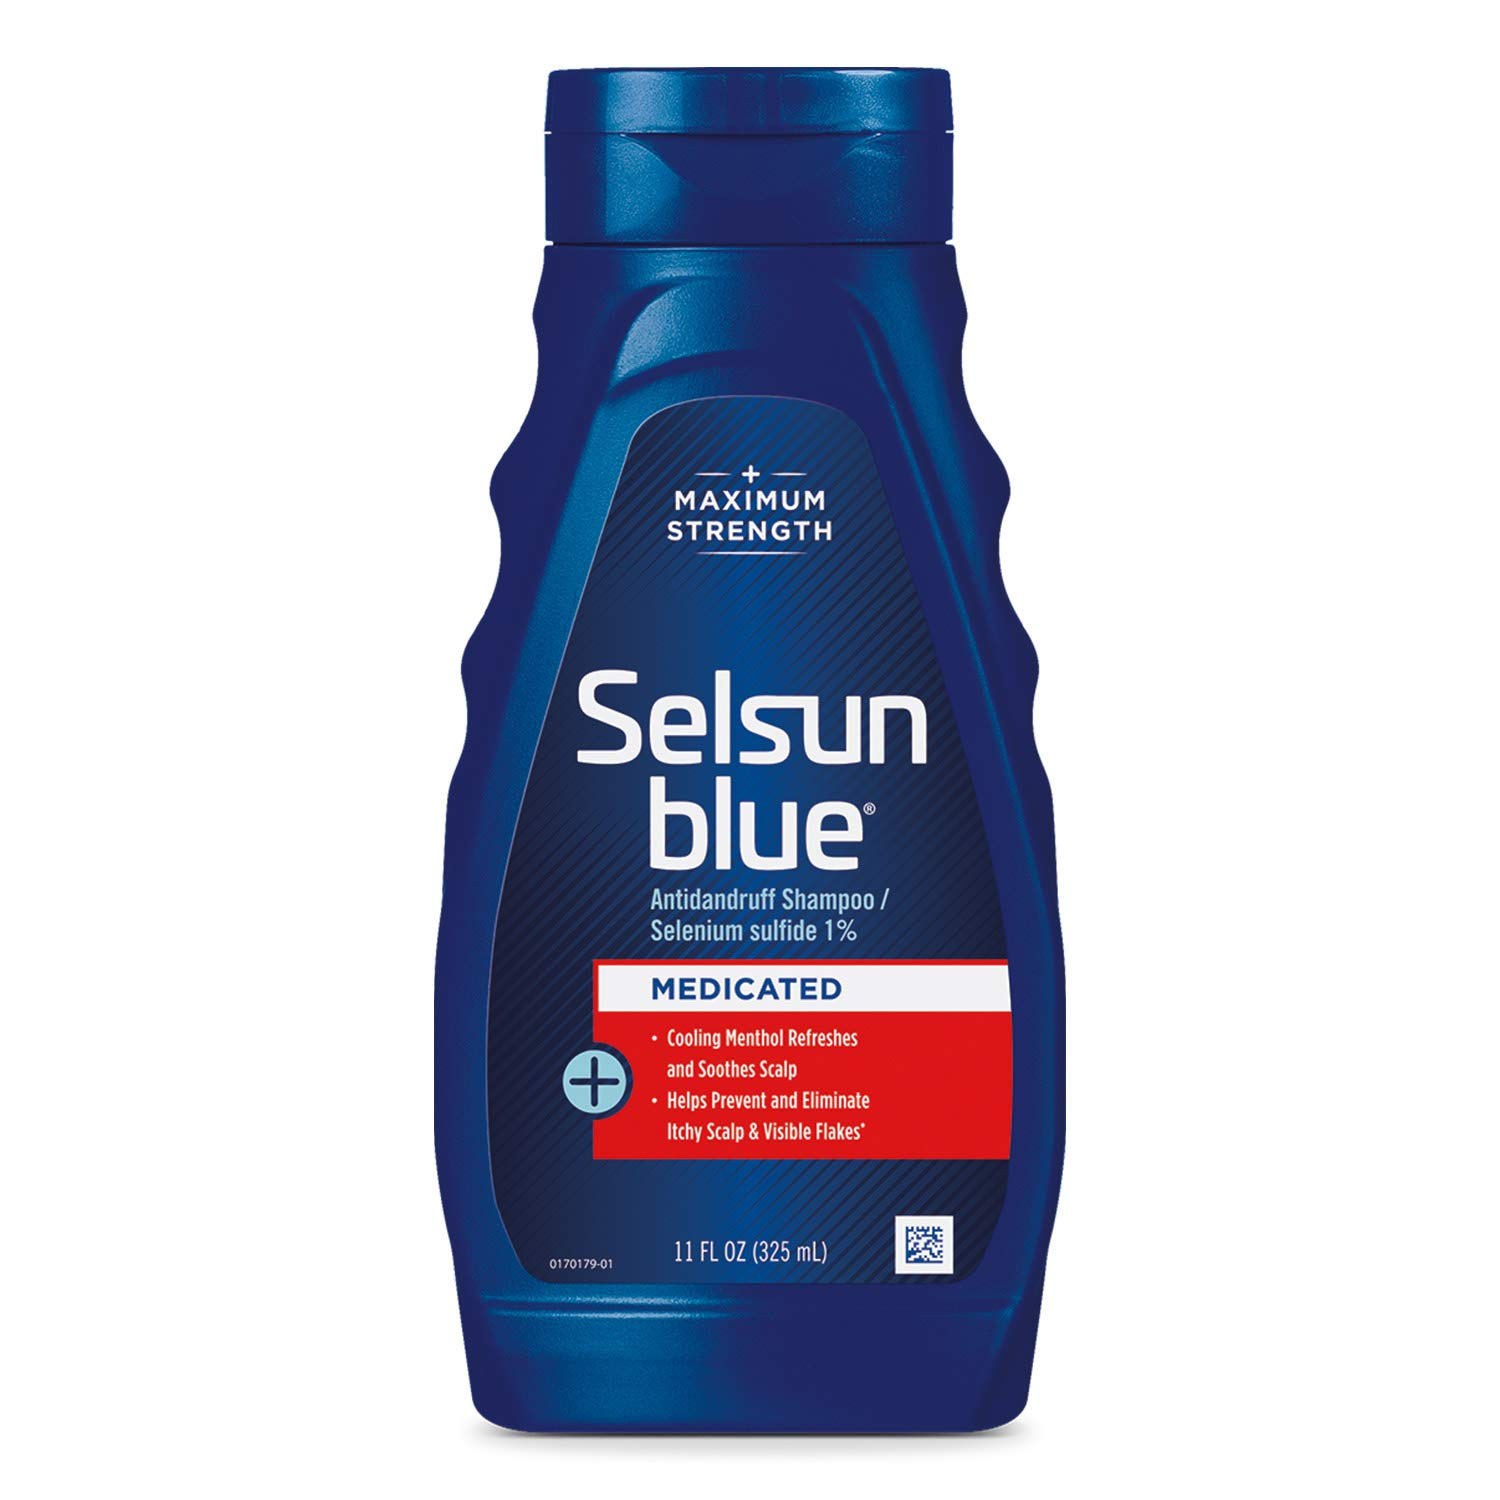 Selsun Blue Medicated Maximum Strength Dandruff Shampoo, 11 Fl Oz, Pack of 1 (60632)